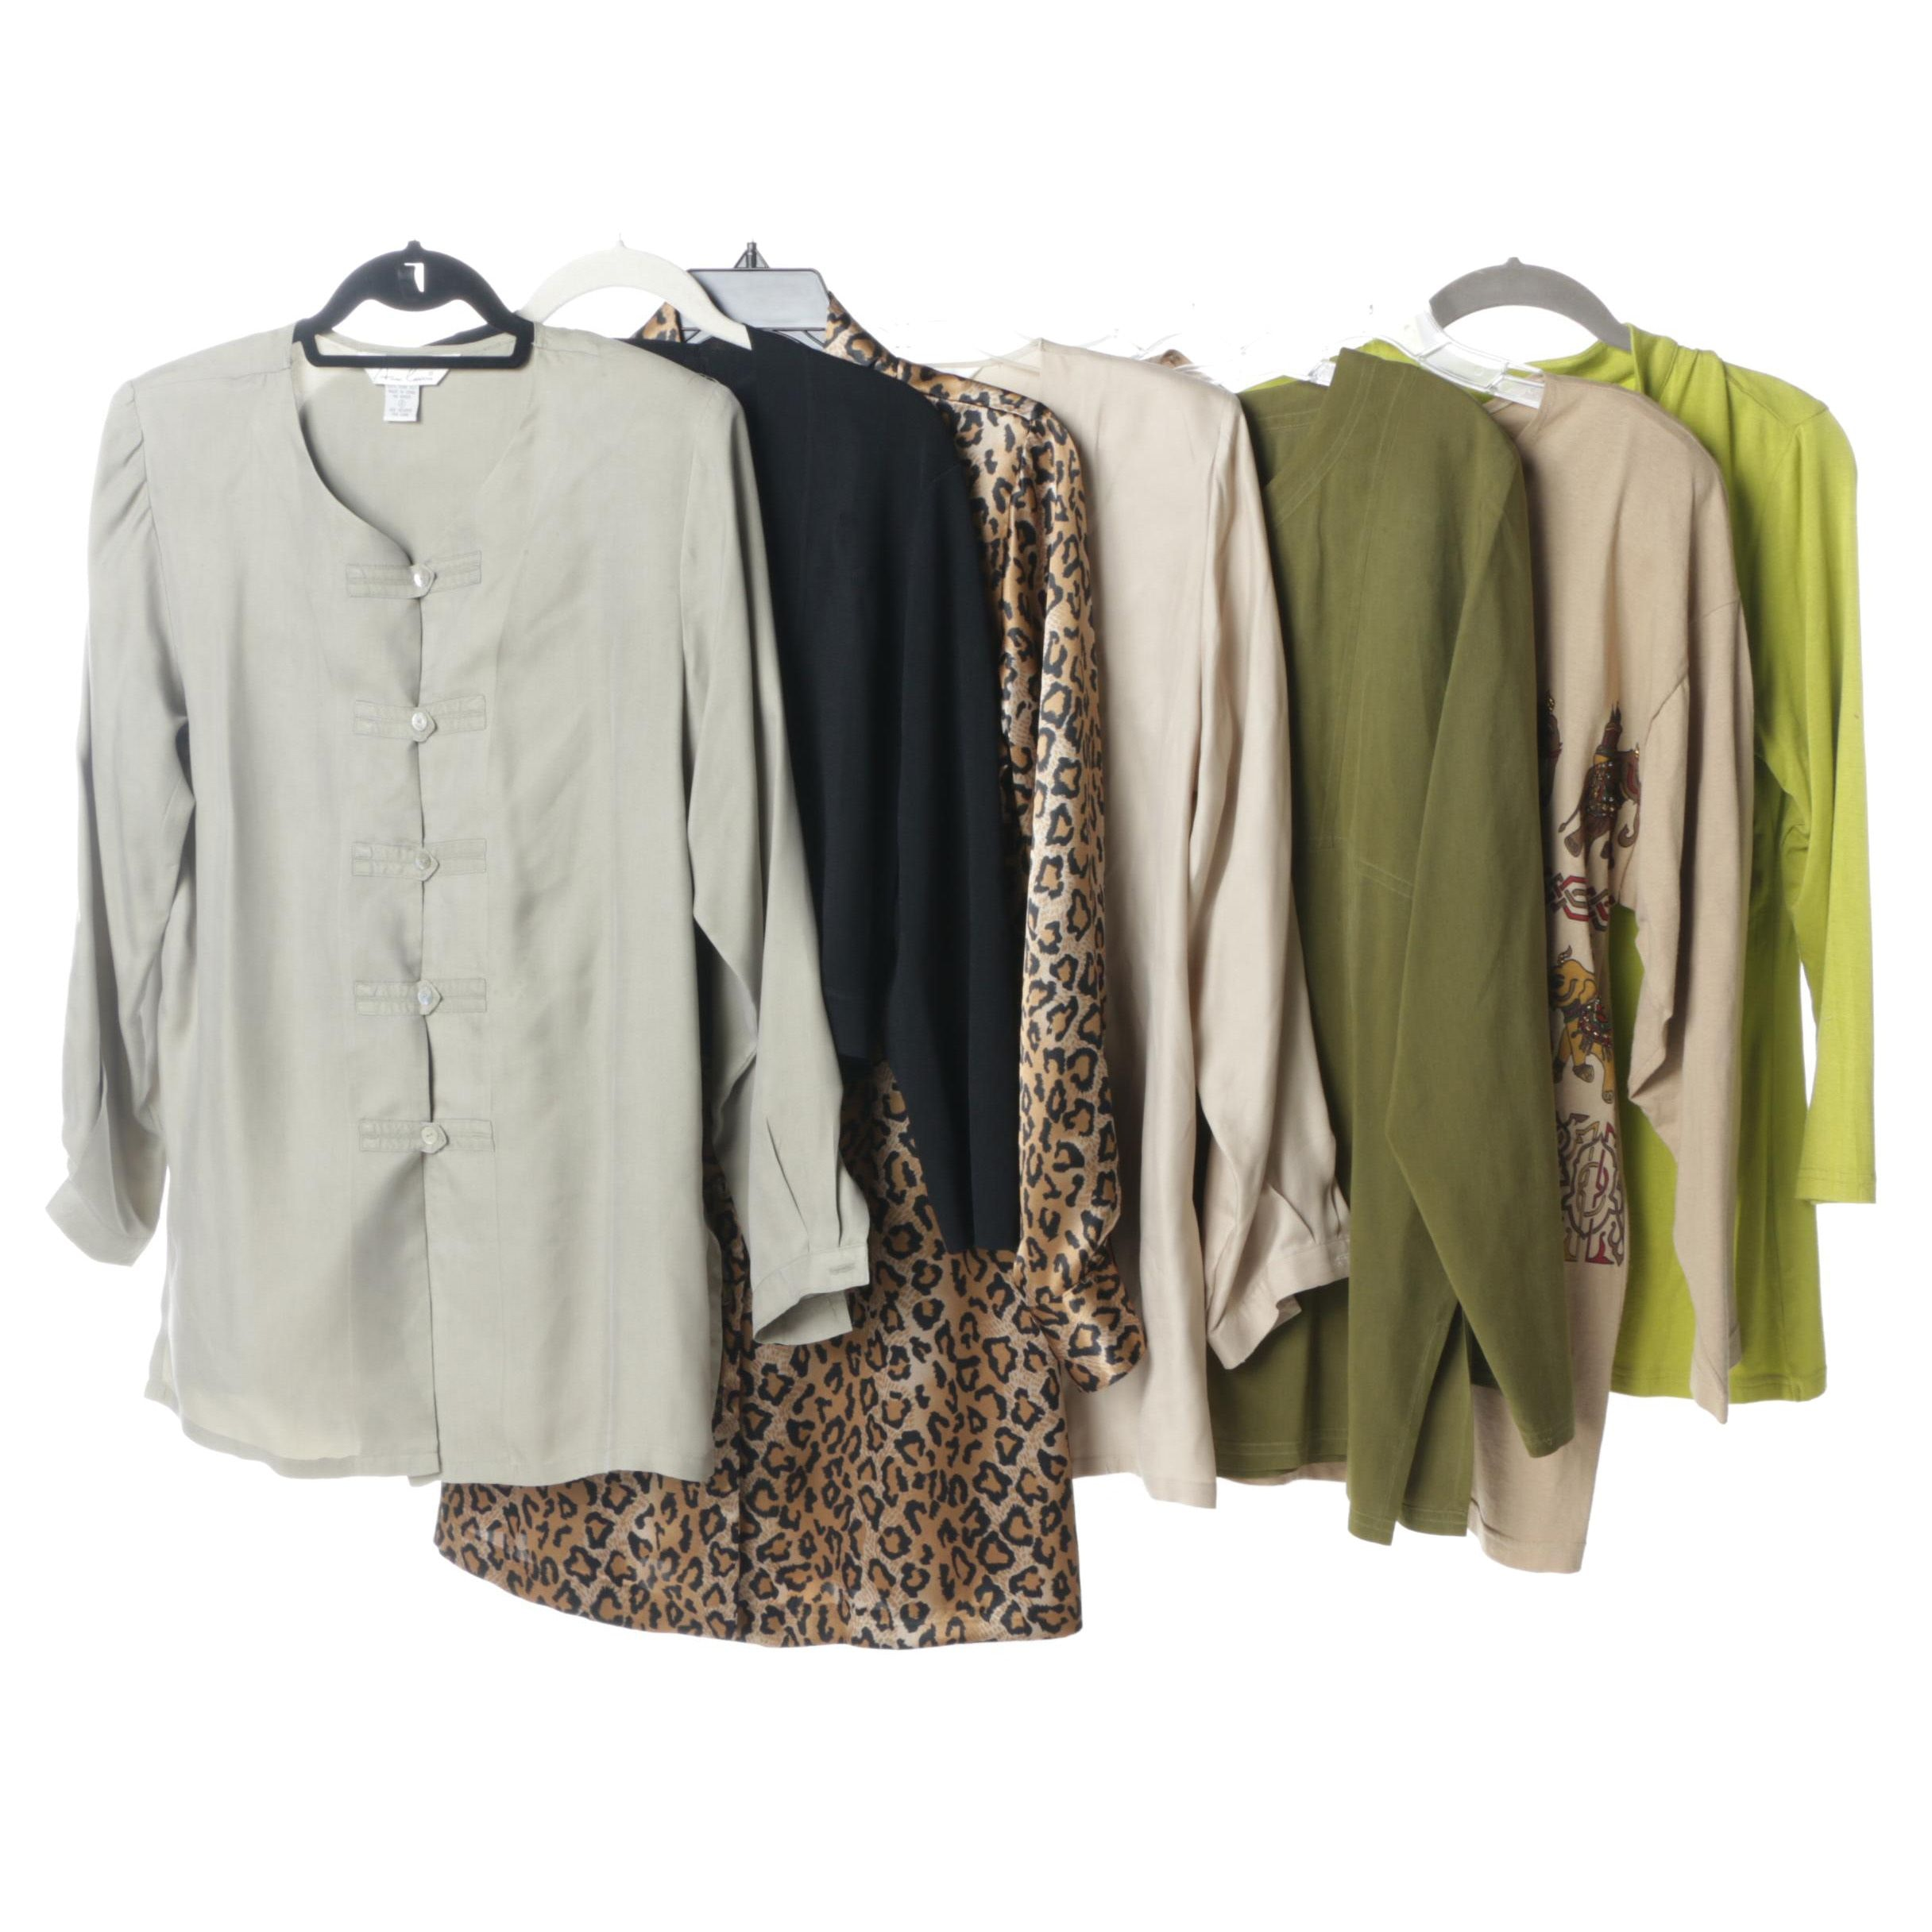 Collection of Women's Tops and Blouses